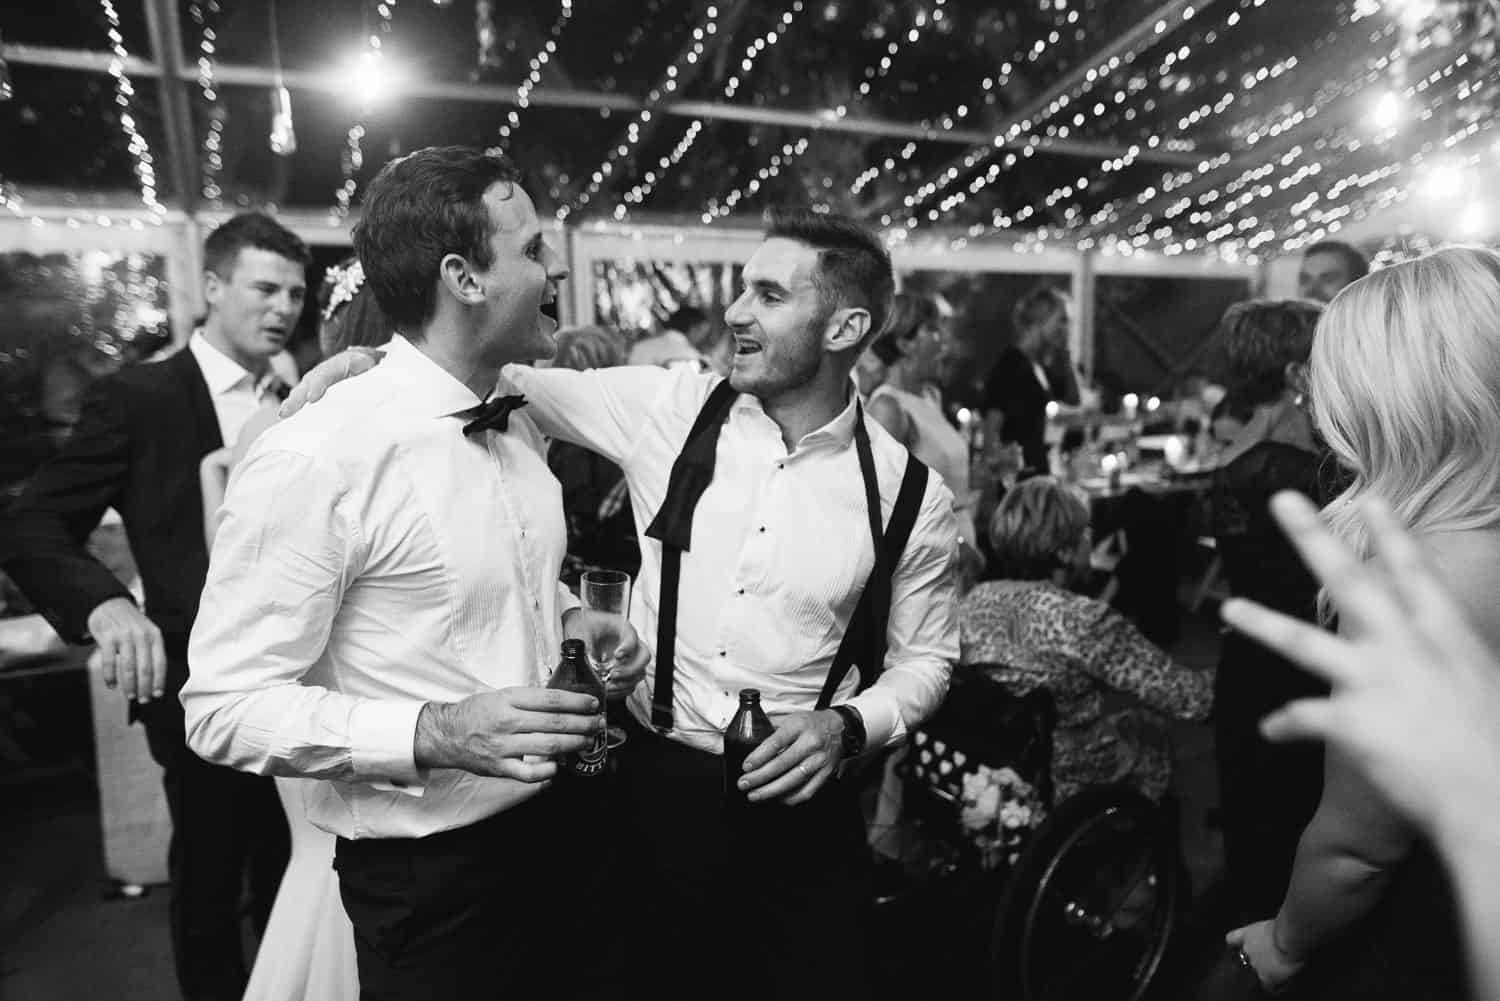 Groom celebrating on the dancefloor